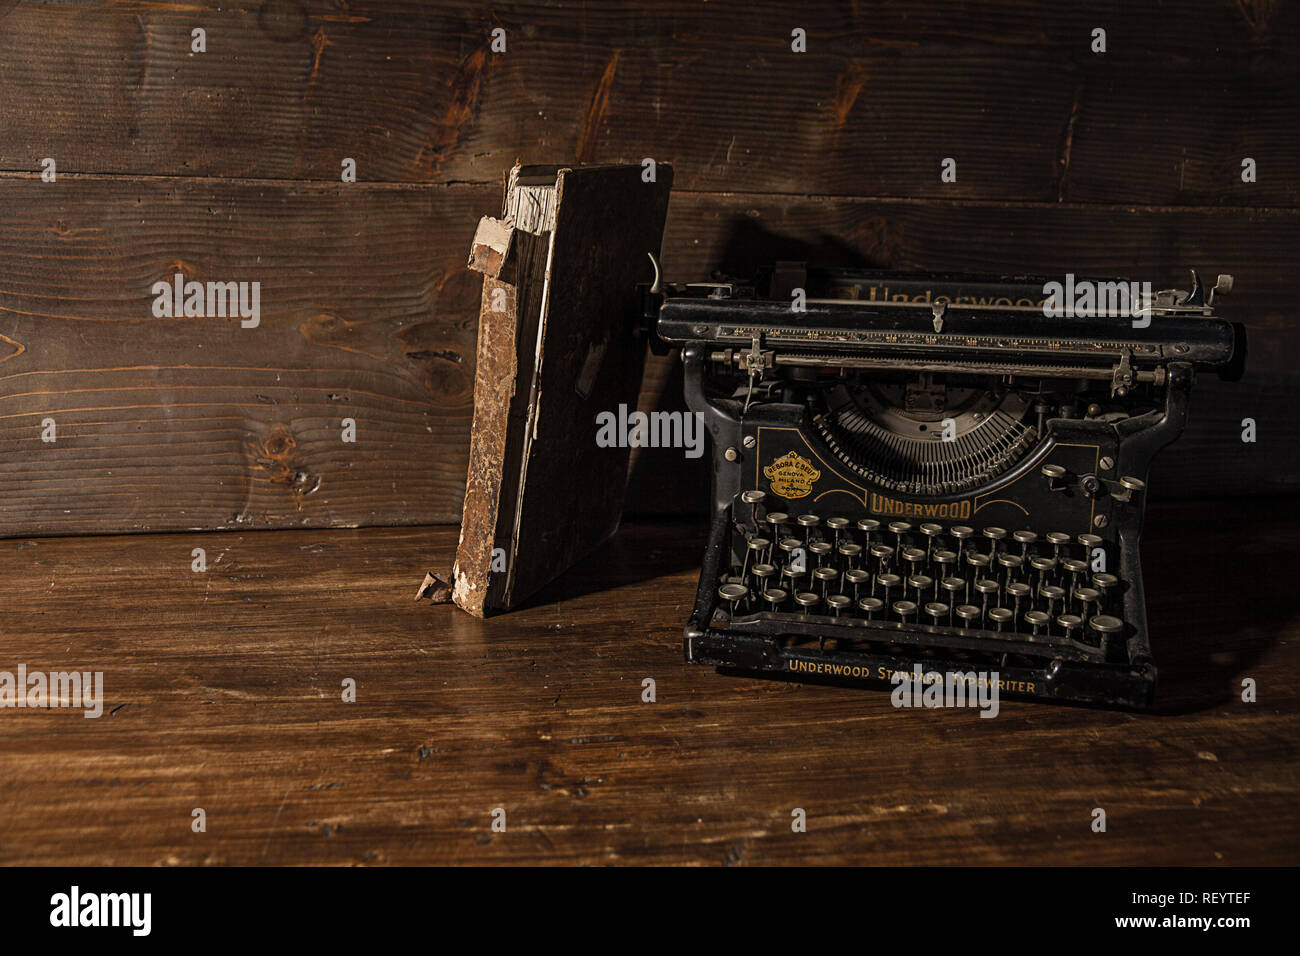 Reading and writing scenes in ancient times: an old book and an old typewriter on a ruined wooden table  on a wooden background Stock Photo